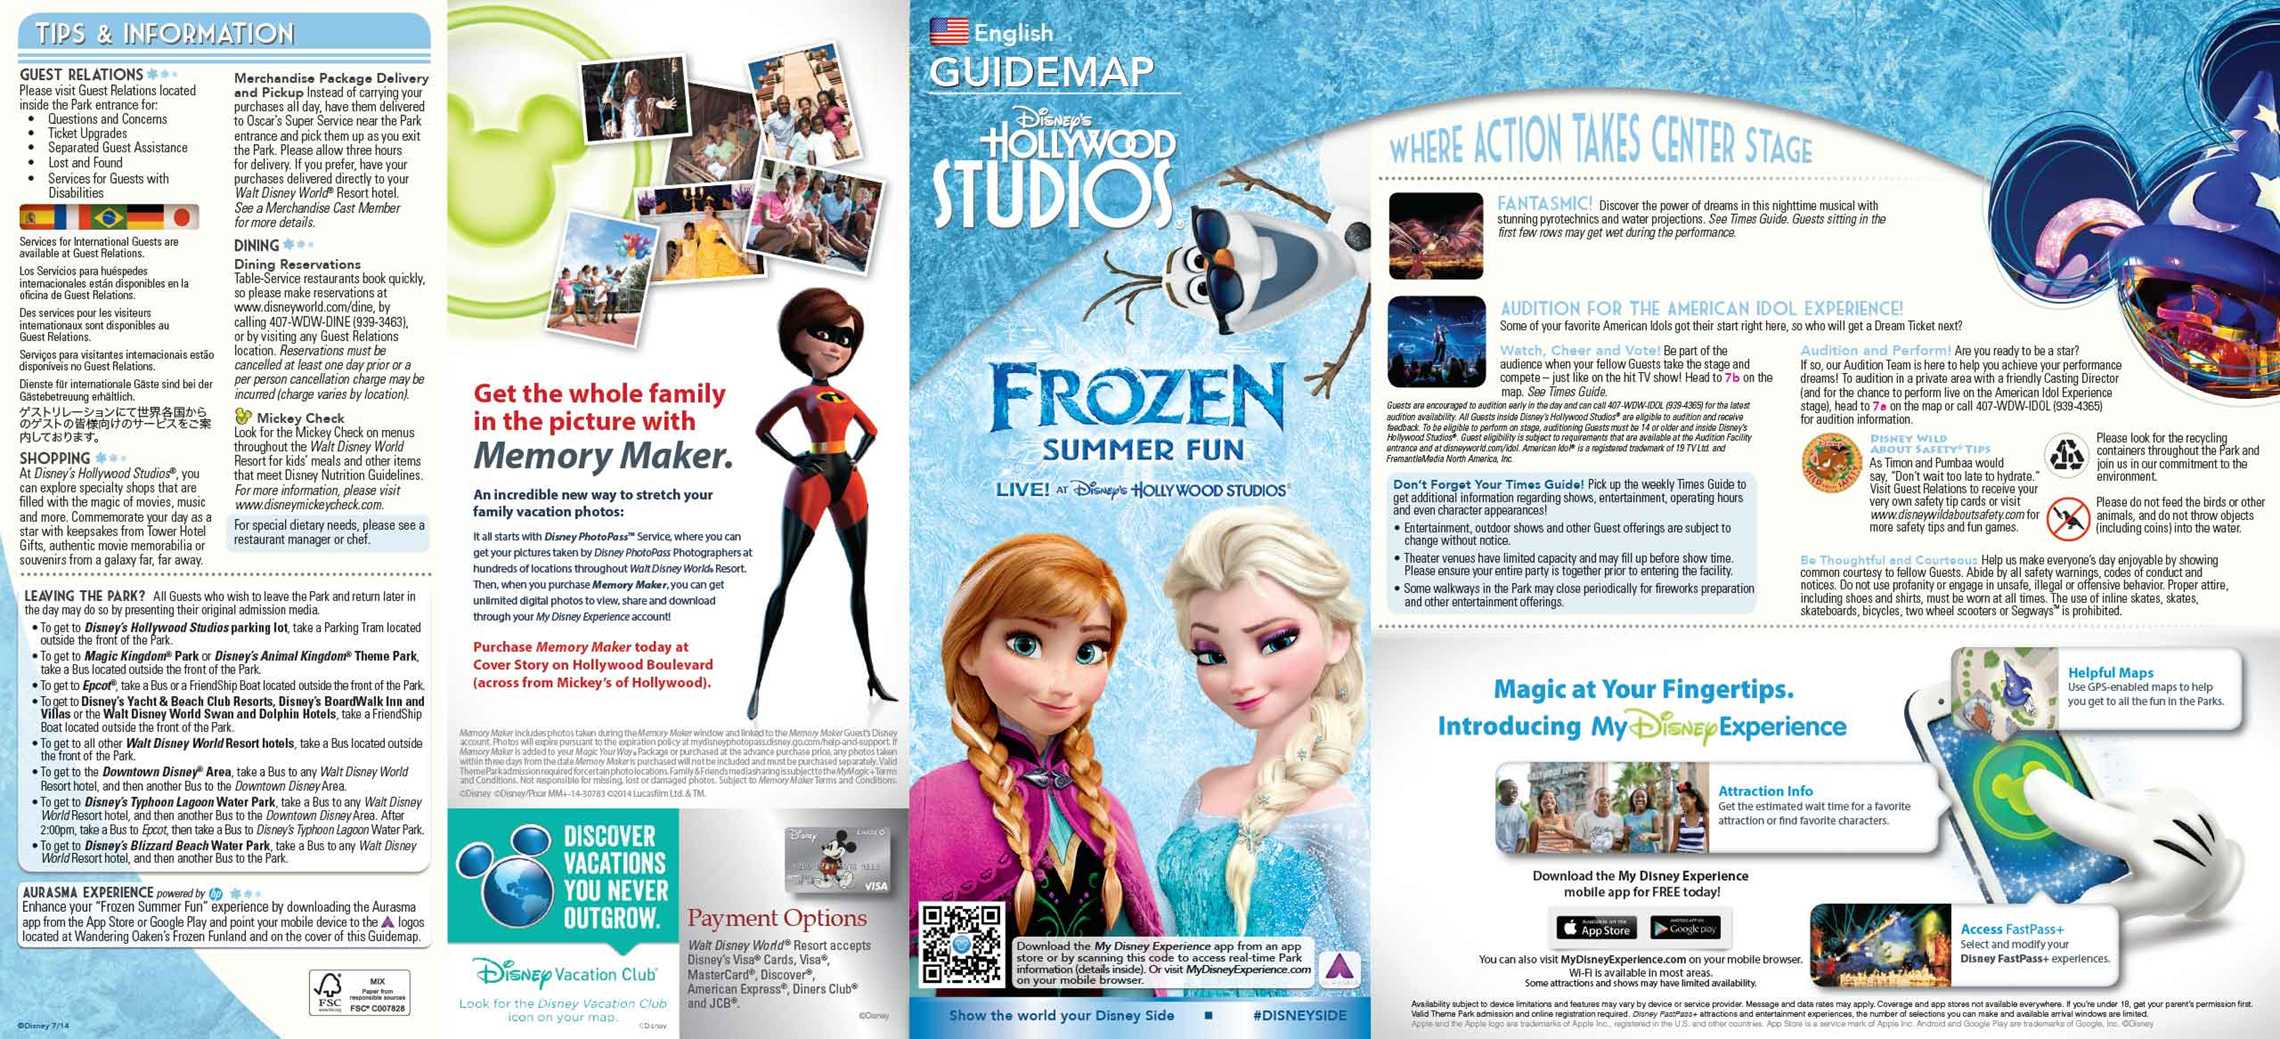 Frozen Summer Fun - LIVE at Disney's Hollywood Studios guide map front